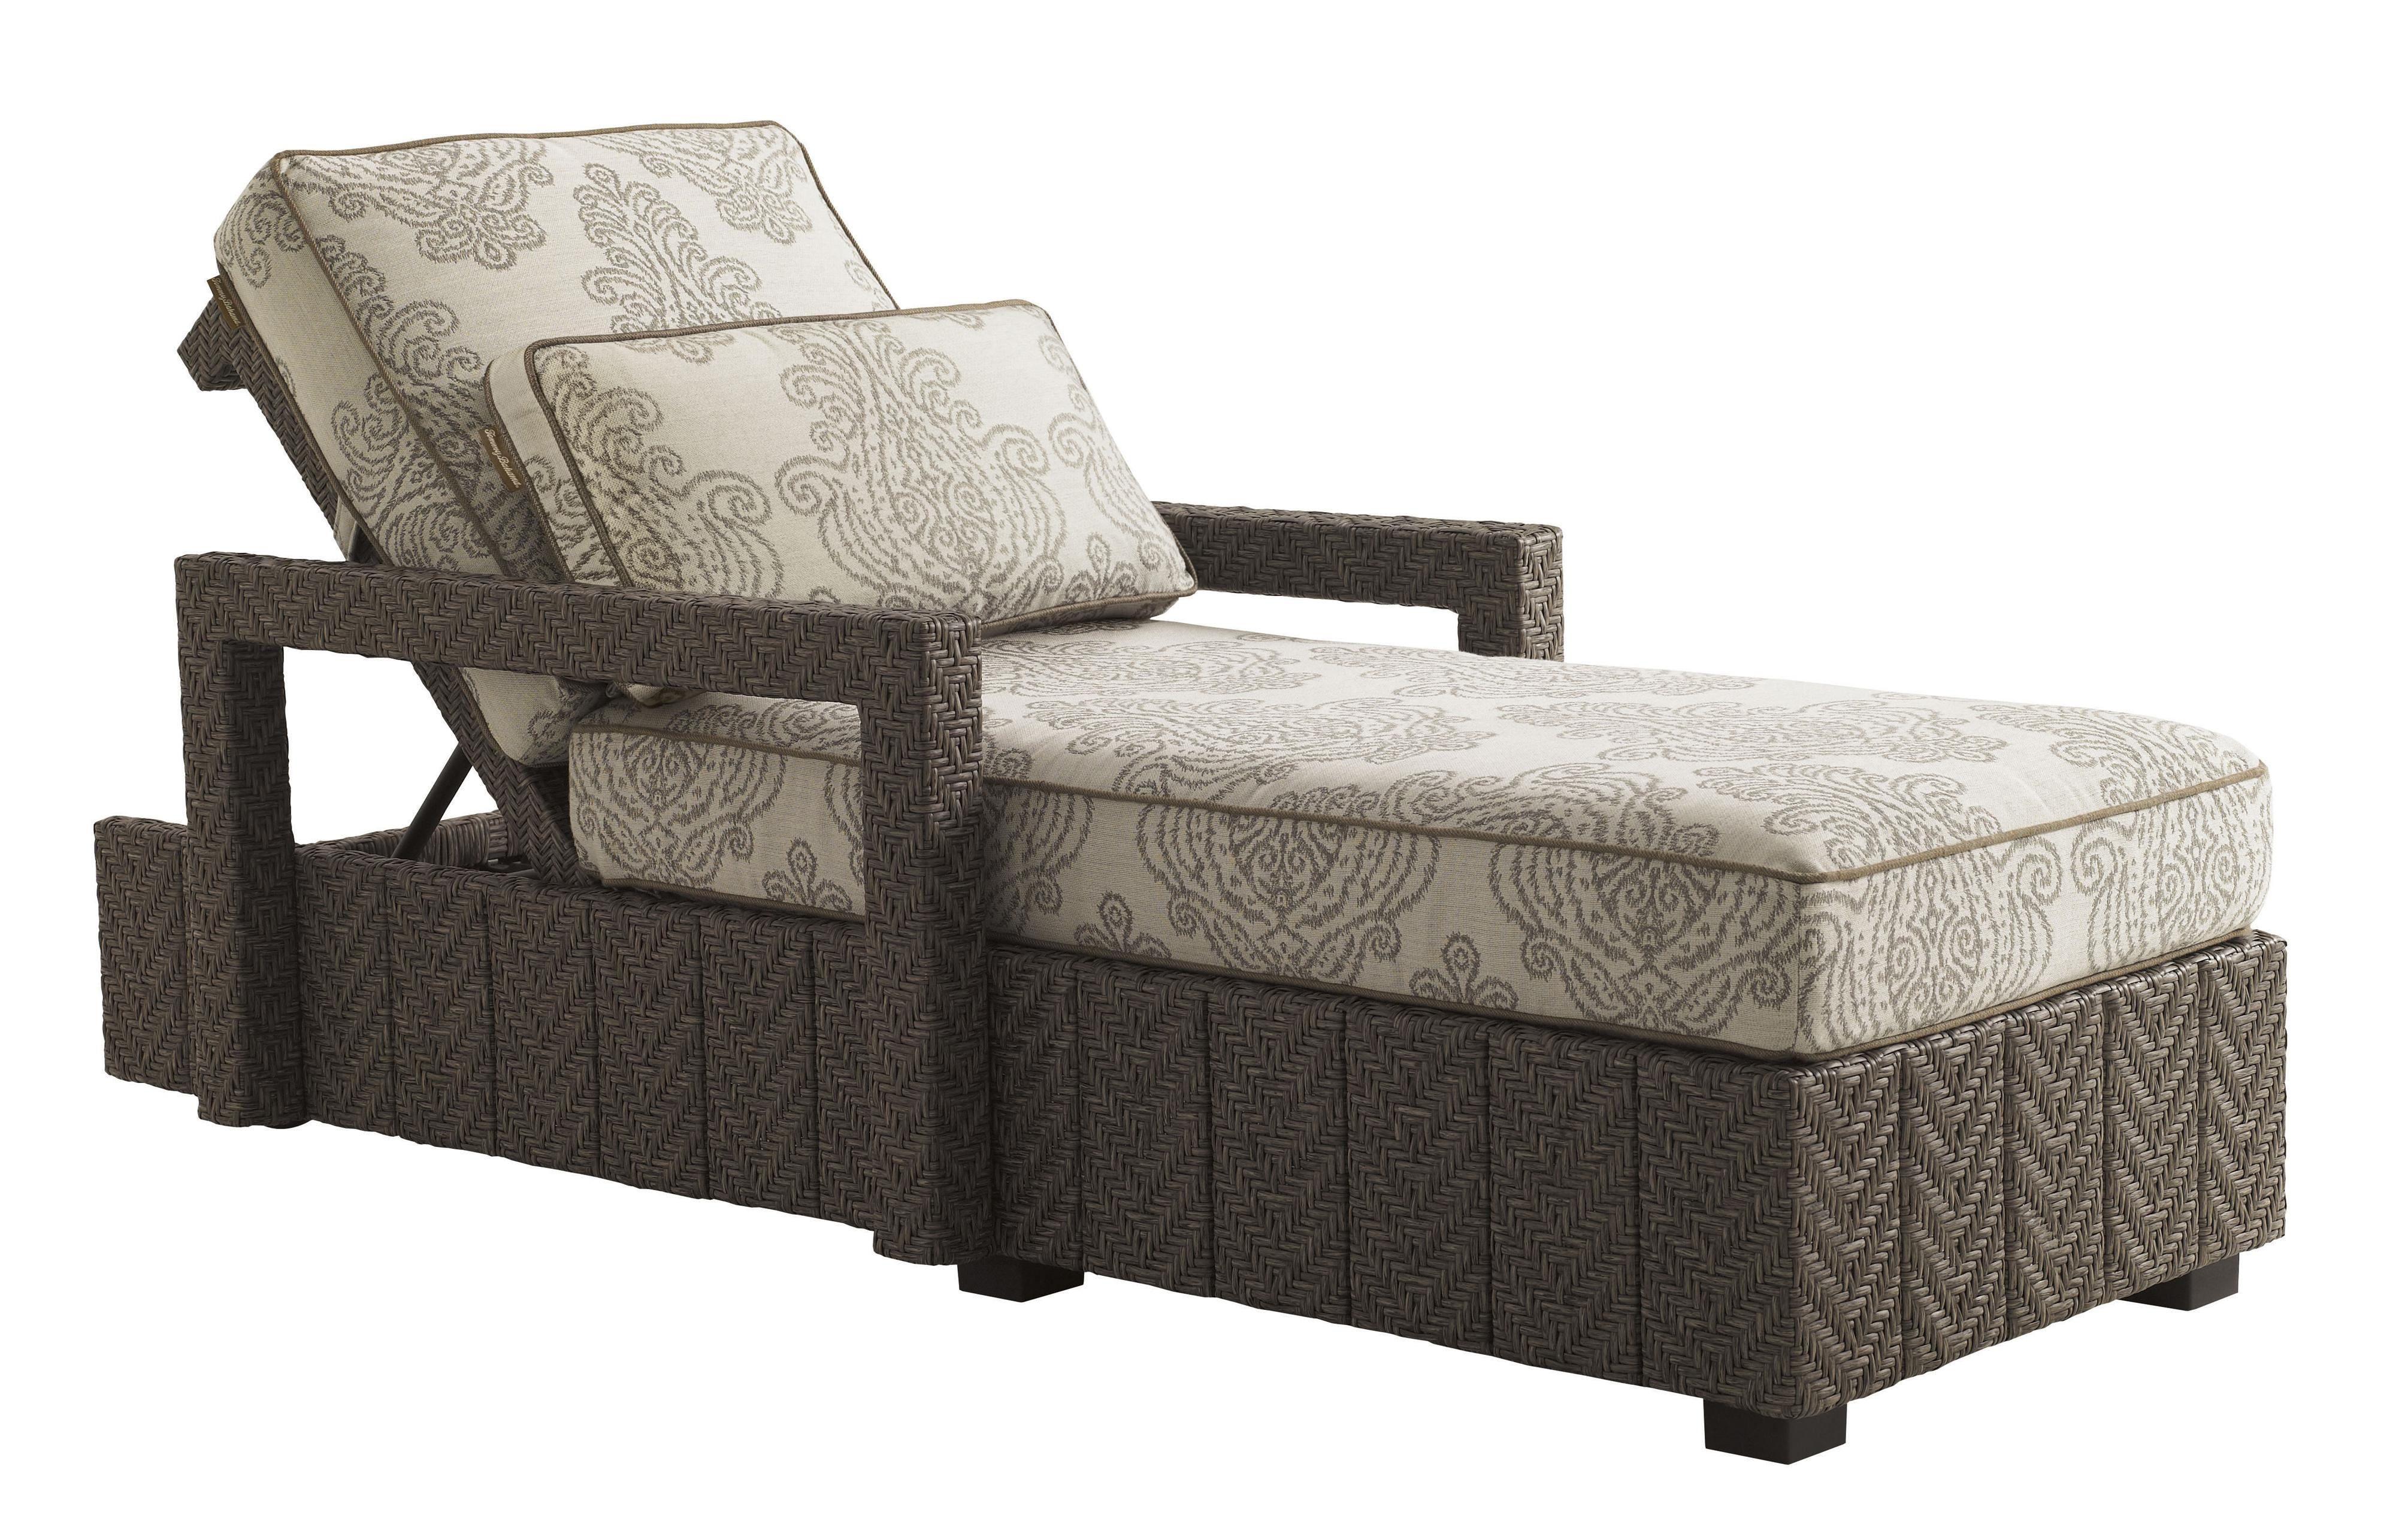 Blue Olive Chaise Lounge by Tommy Bahama Outdoor Living at Baer's Furniture